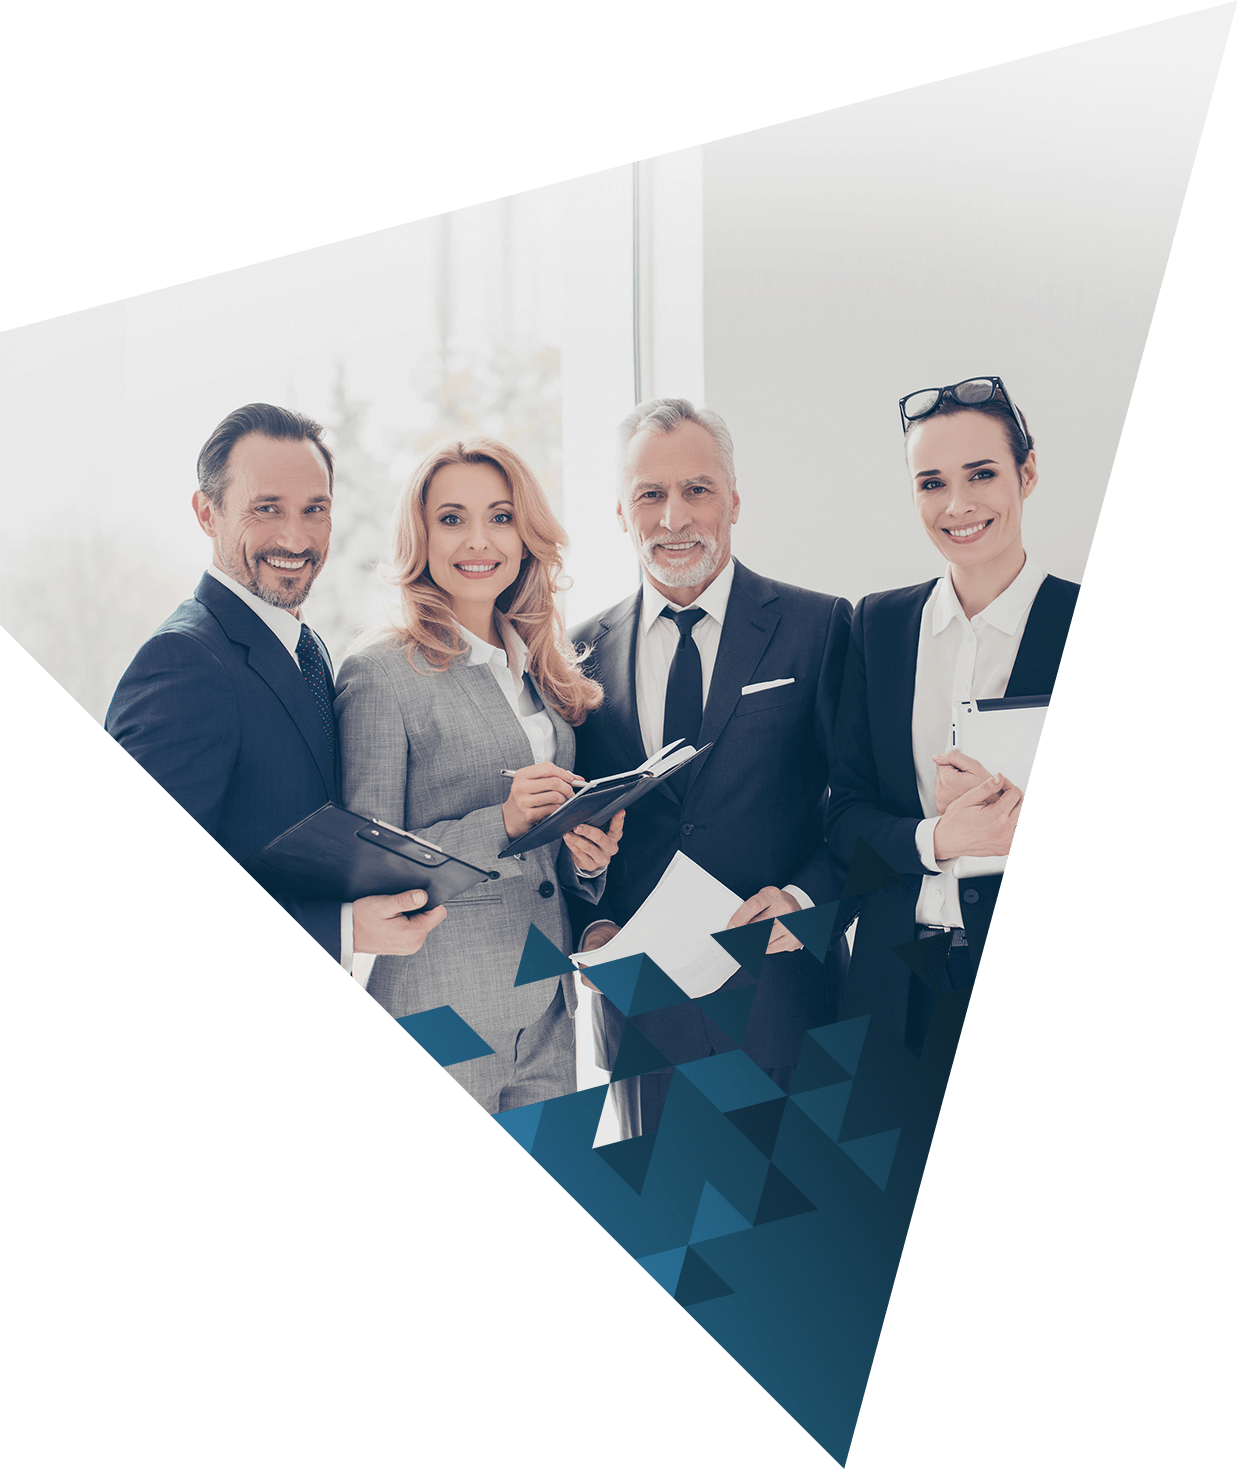 https://pbcaccountants.lk/wp-content/uploads/2019/04/img-experience.png